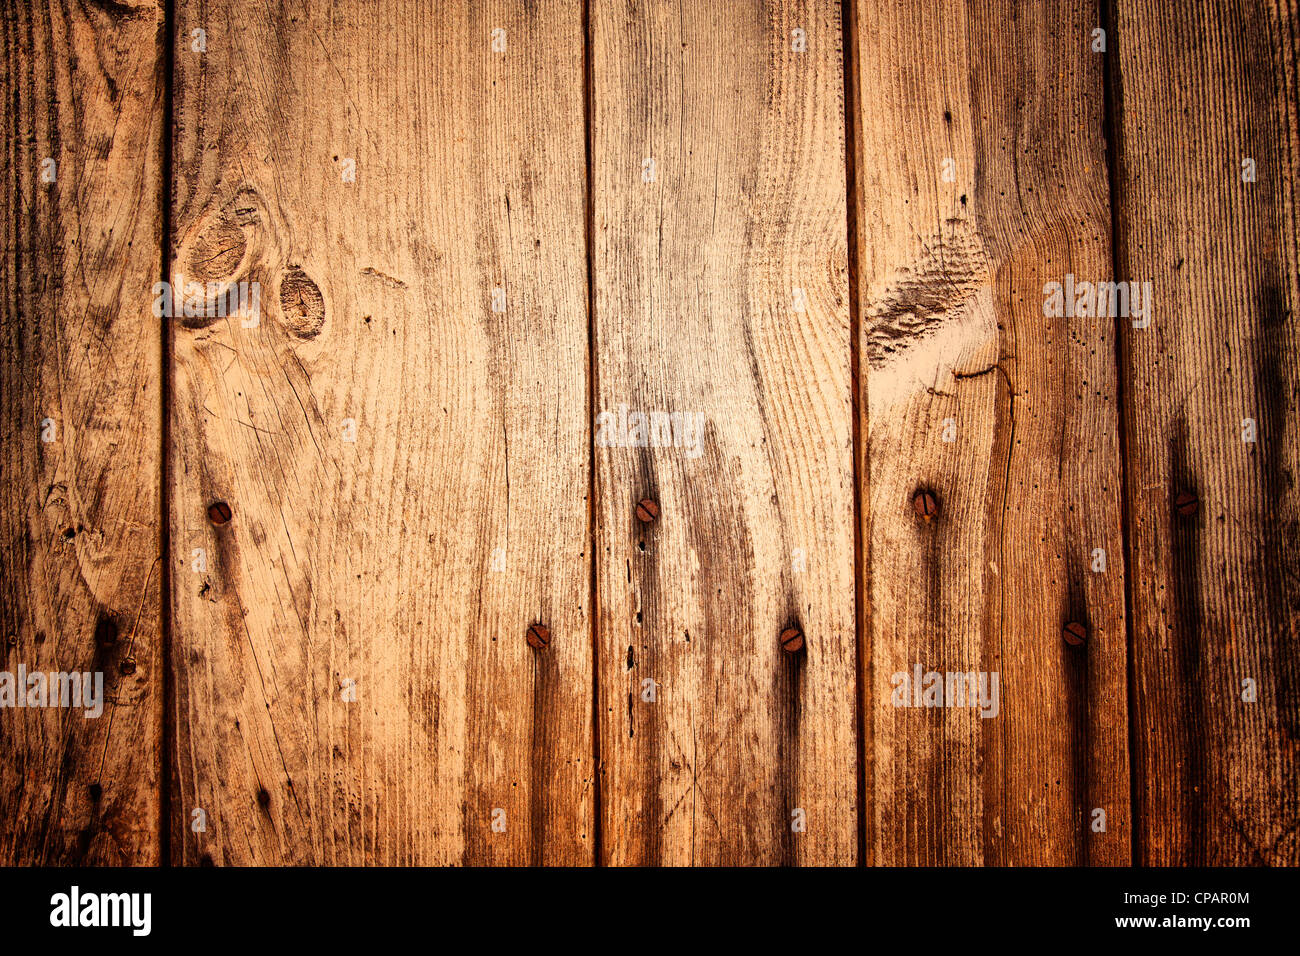 Old Wooden Planks and Nails Stock Foto